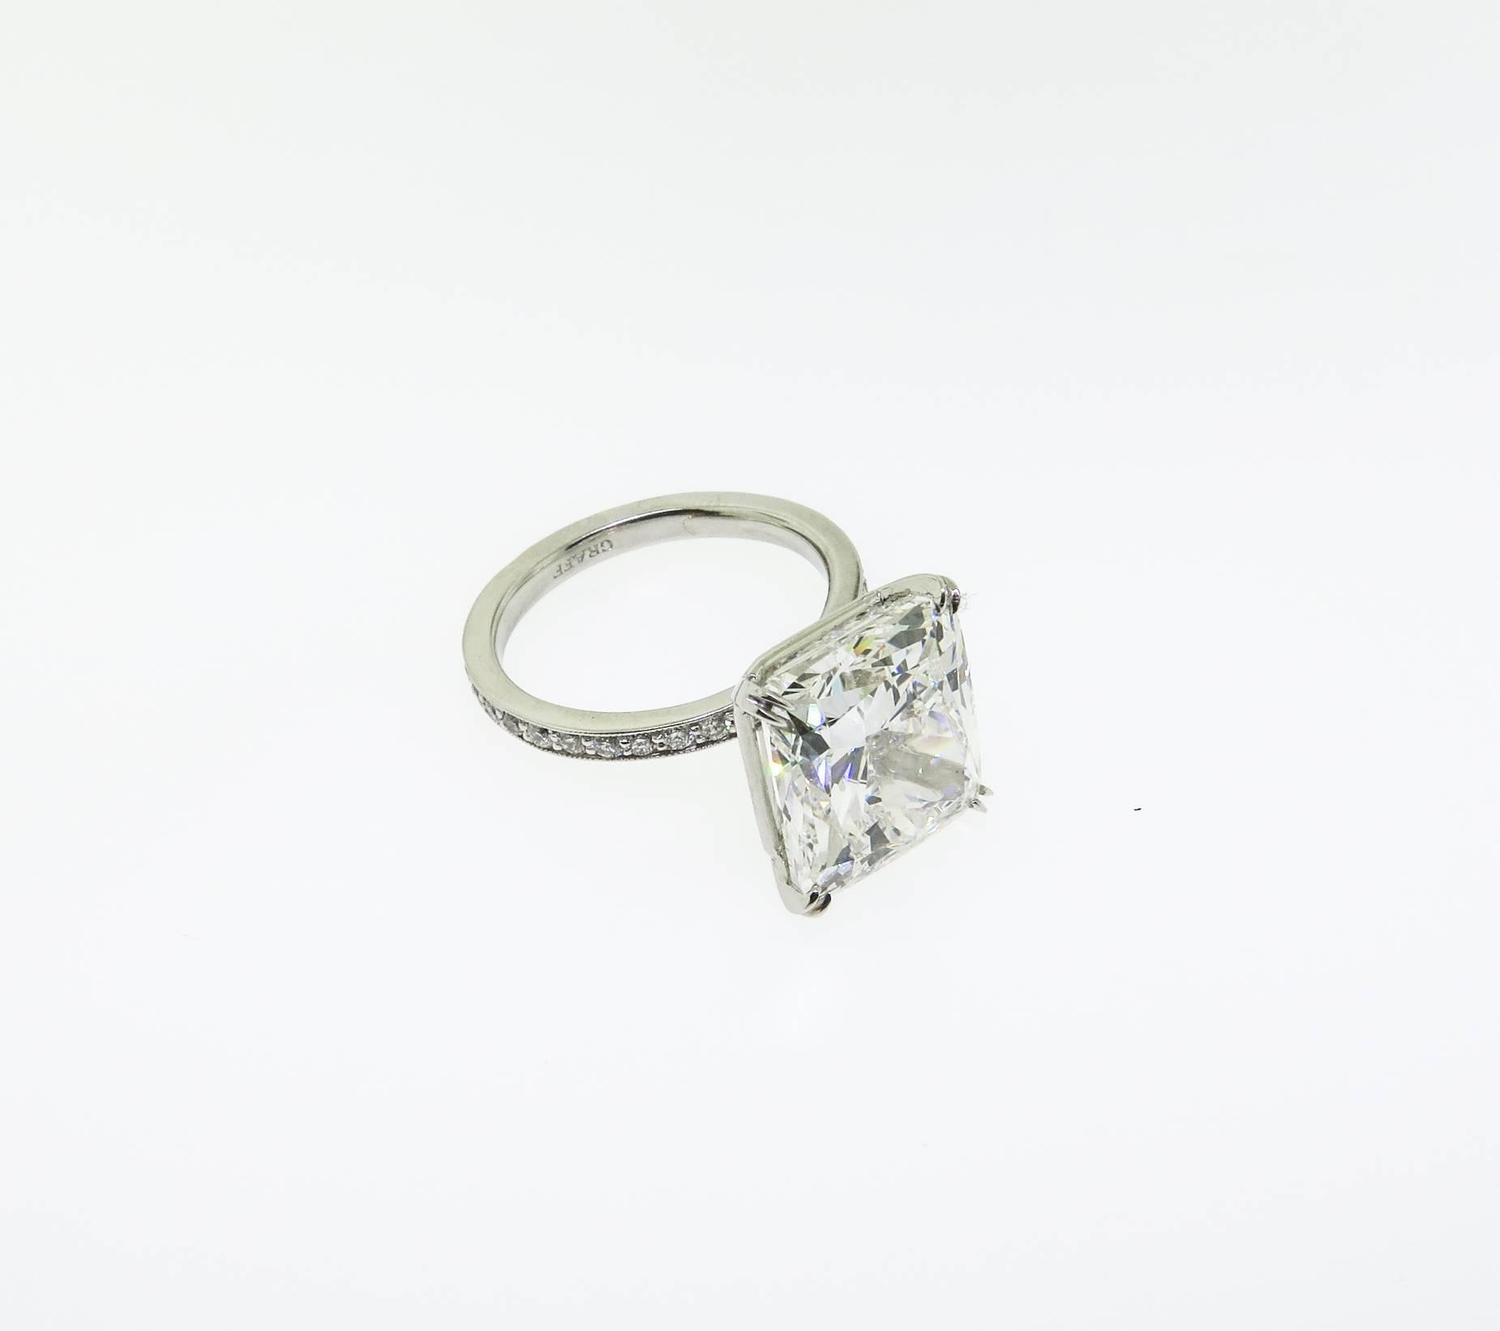 Graff 9 34 Carat Cushion Cut Diamond Platinum Engagement